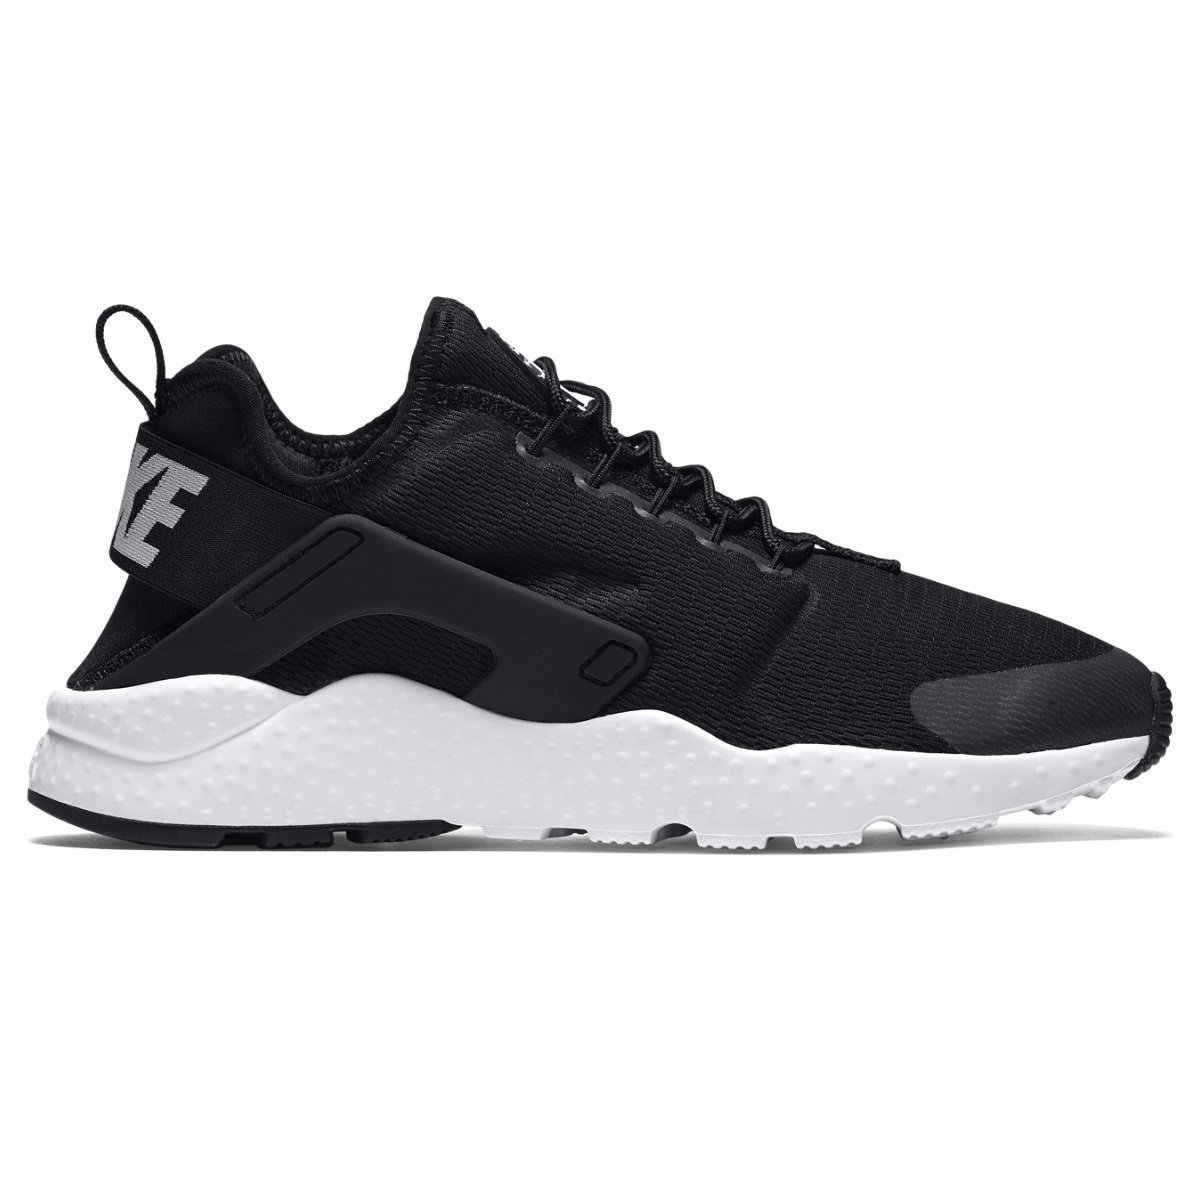 separation shoes ee3bd dbeea Galleon - Nike Air Huarache Run Ultra Women s Shoes Black White 819151-001  (11 B(M) US)